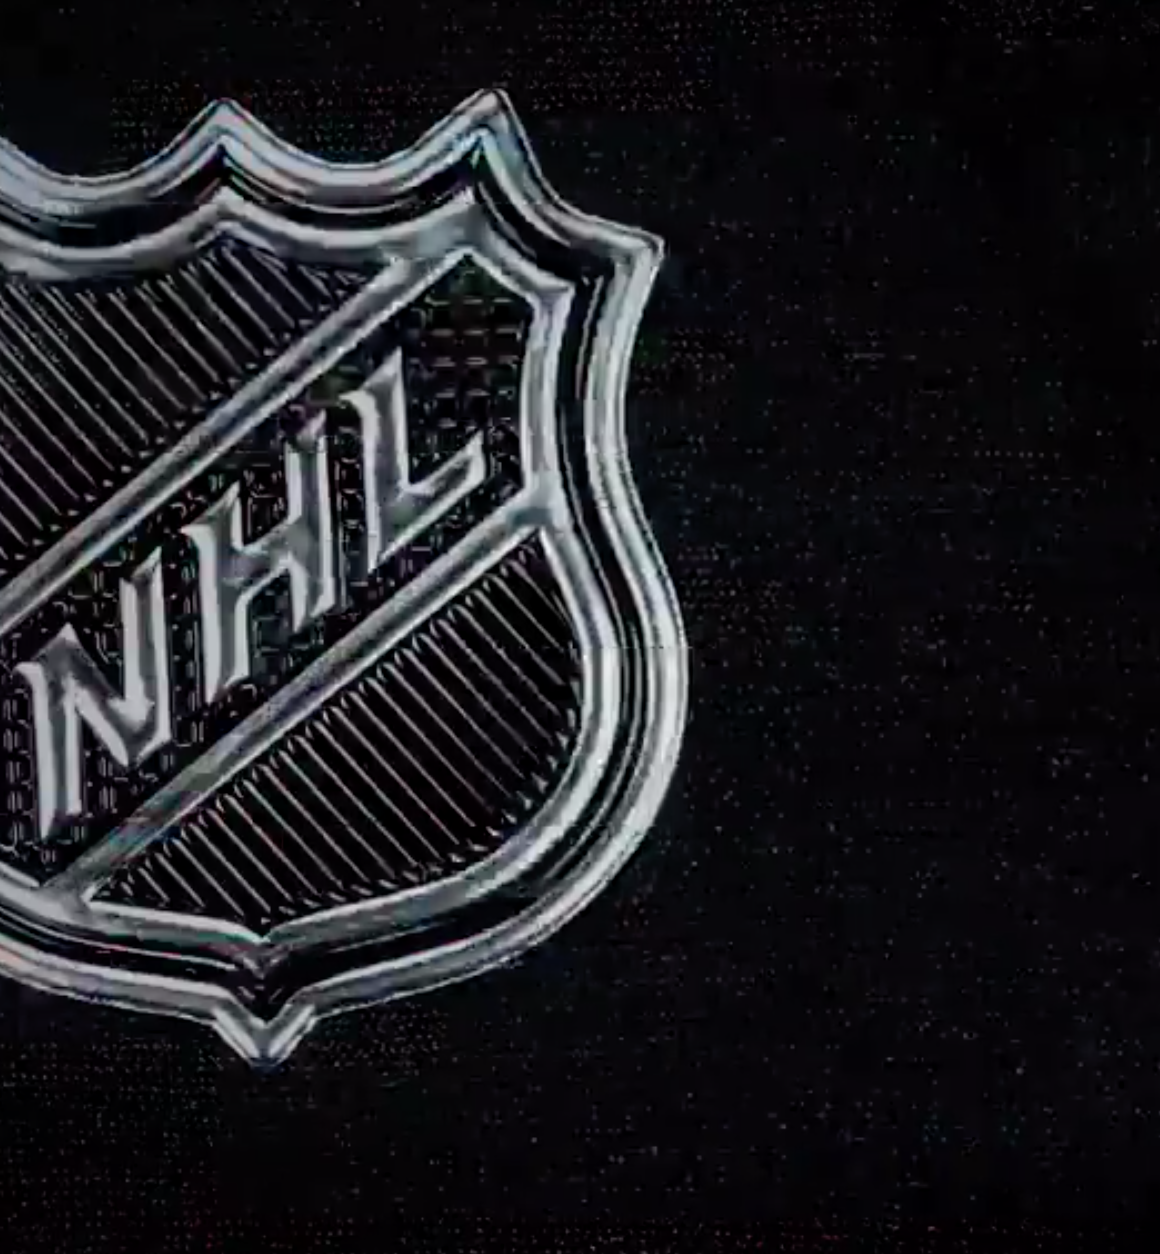 4b5f2b09 Adidas gives hockey fans a glimpse of four details of new NHL ...